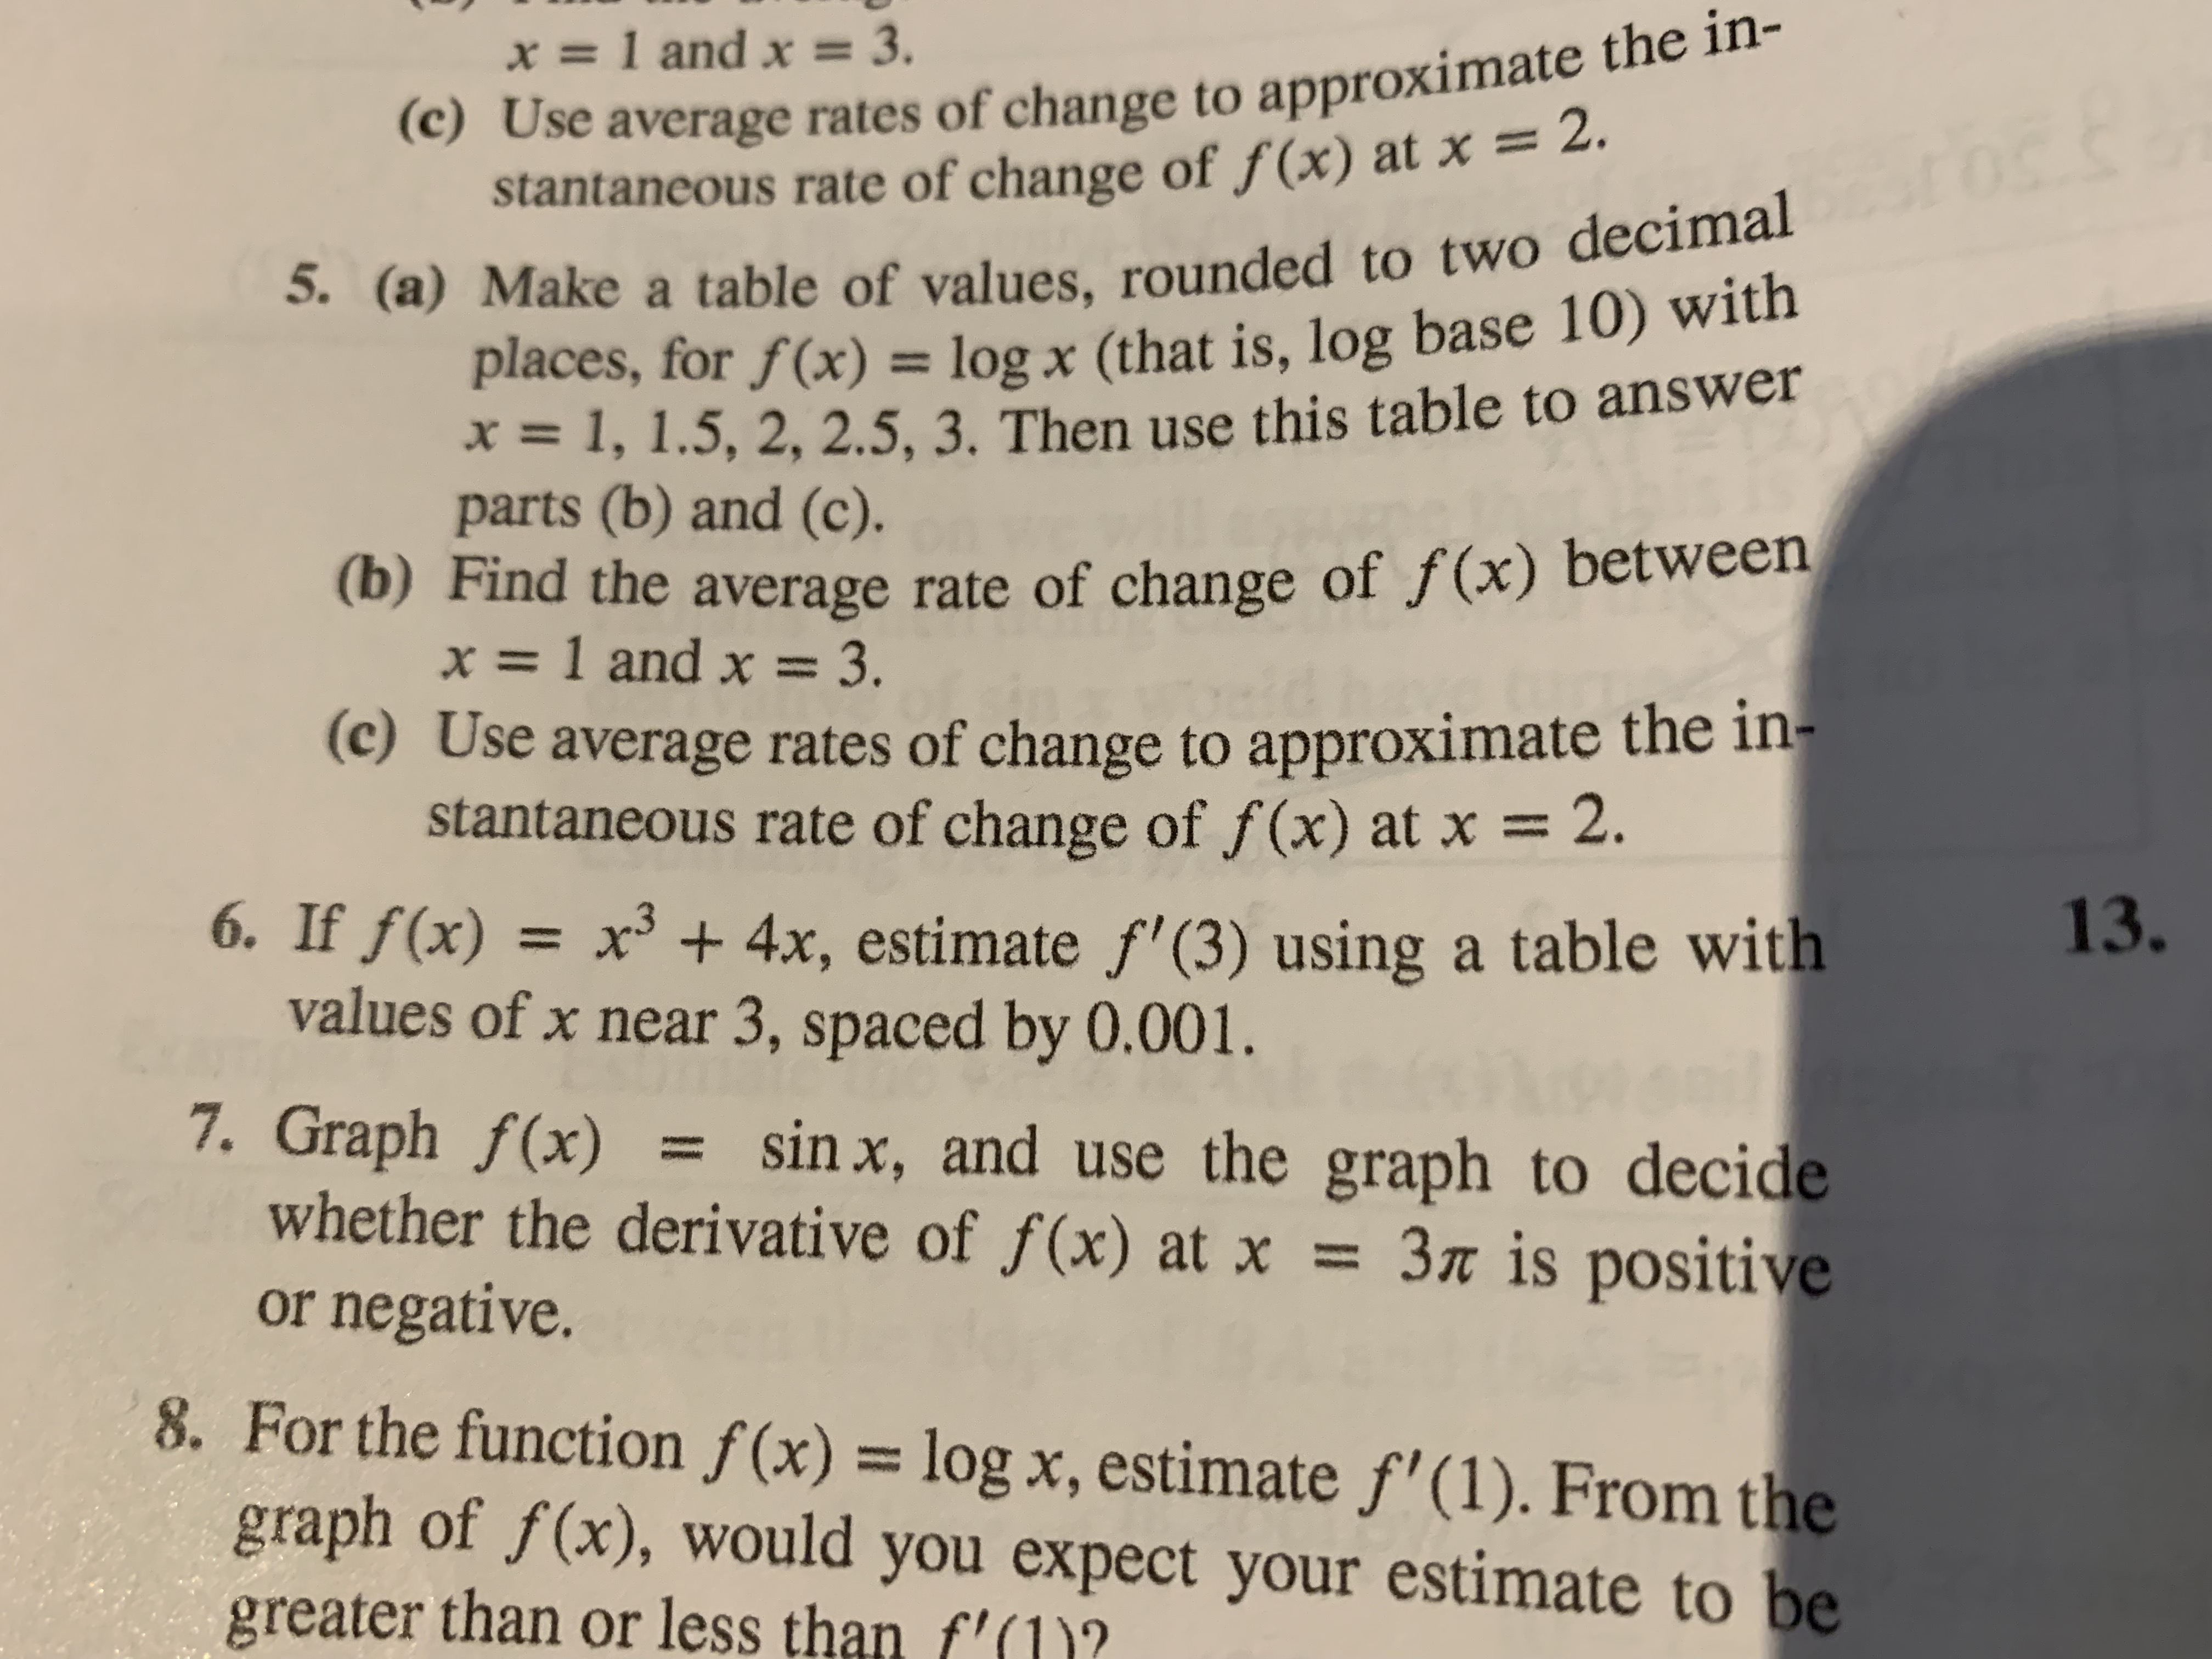 (c) Use average rates of change to approximate the in- stantaneous rate of change of f(x) at x = 2. 5. (a) Make a table of values, rounded to two decimal places, for f(x) = log x (that is, log base 10) with =1, 1.5, 2, 2.5, 3. Then use this table to answer parts (b) and (c). (b) Find the average rate of change of f(x) between =1 and x 3. (c) Use average rates of change to approximate the in- stantaneous rate of change of f (x) at x x=1 and x = 3. 2. 6. If f(x) = x3 4x, estimate f' (3) using a table with values of x near 3, spaced by 0.001. 7. Graph f(x) whether the derivative of f(x) at x = 3« is positive or negative. 13. sin x, and use the graph to decide 8. For the function f(x) = log x, estimate f'(1). From the graph of f(x), would you expect your estimate to be greater than or less than f'(1)?